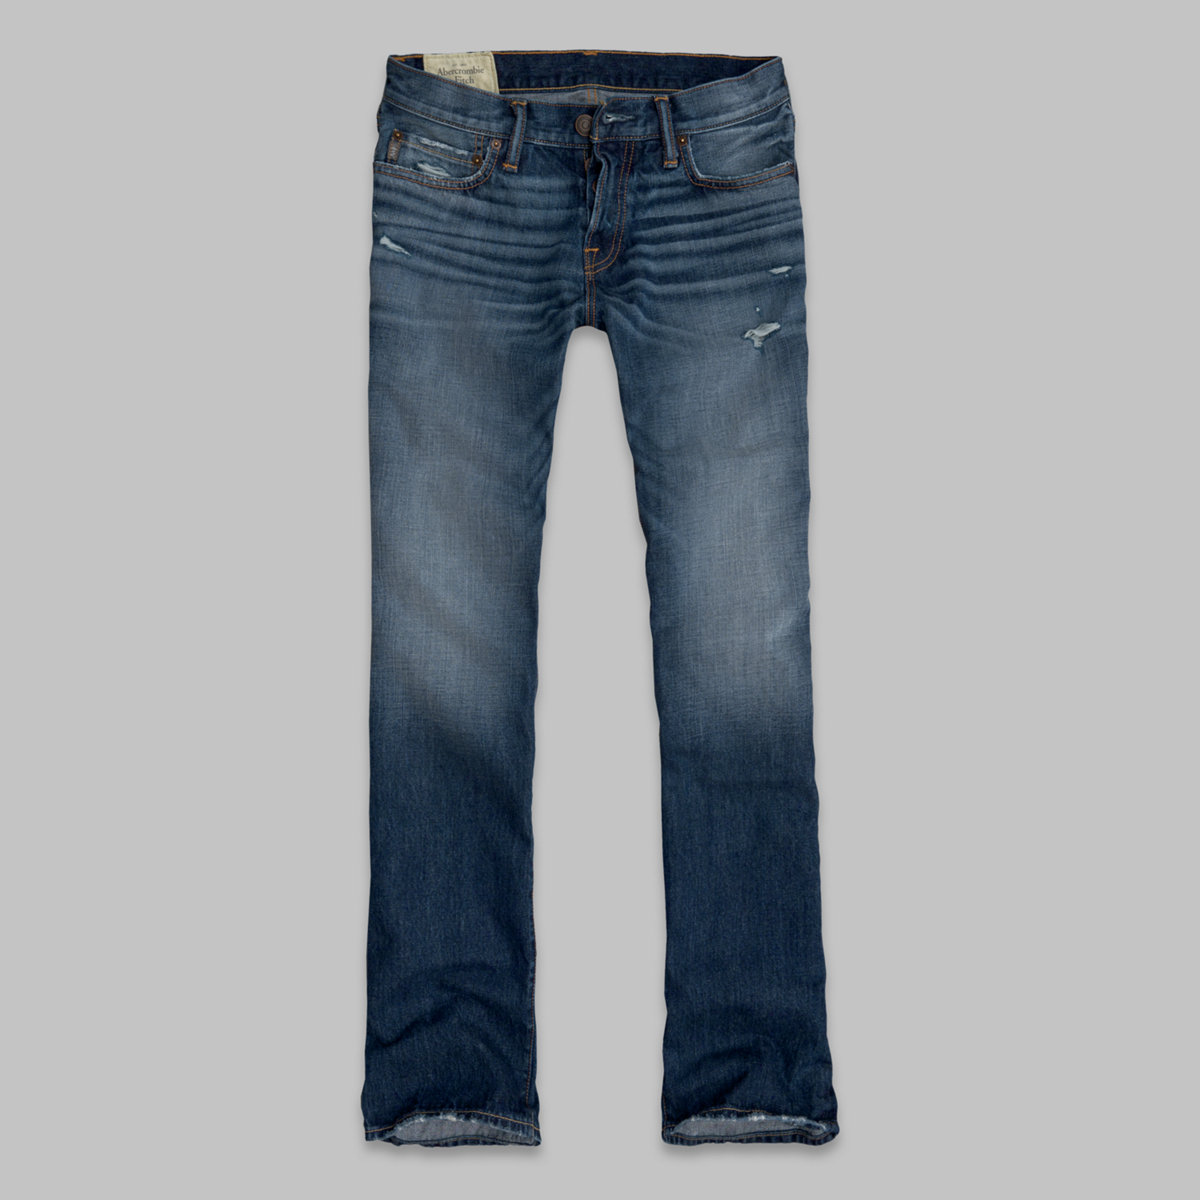 A&F Boot Button Fly Jeans